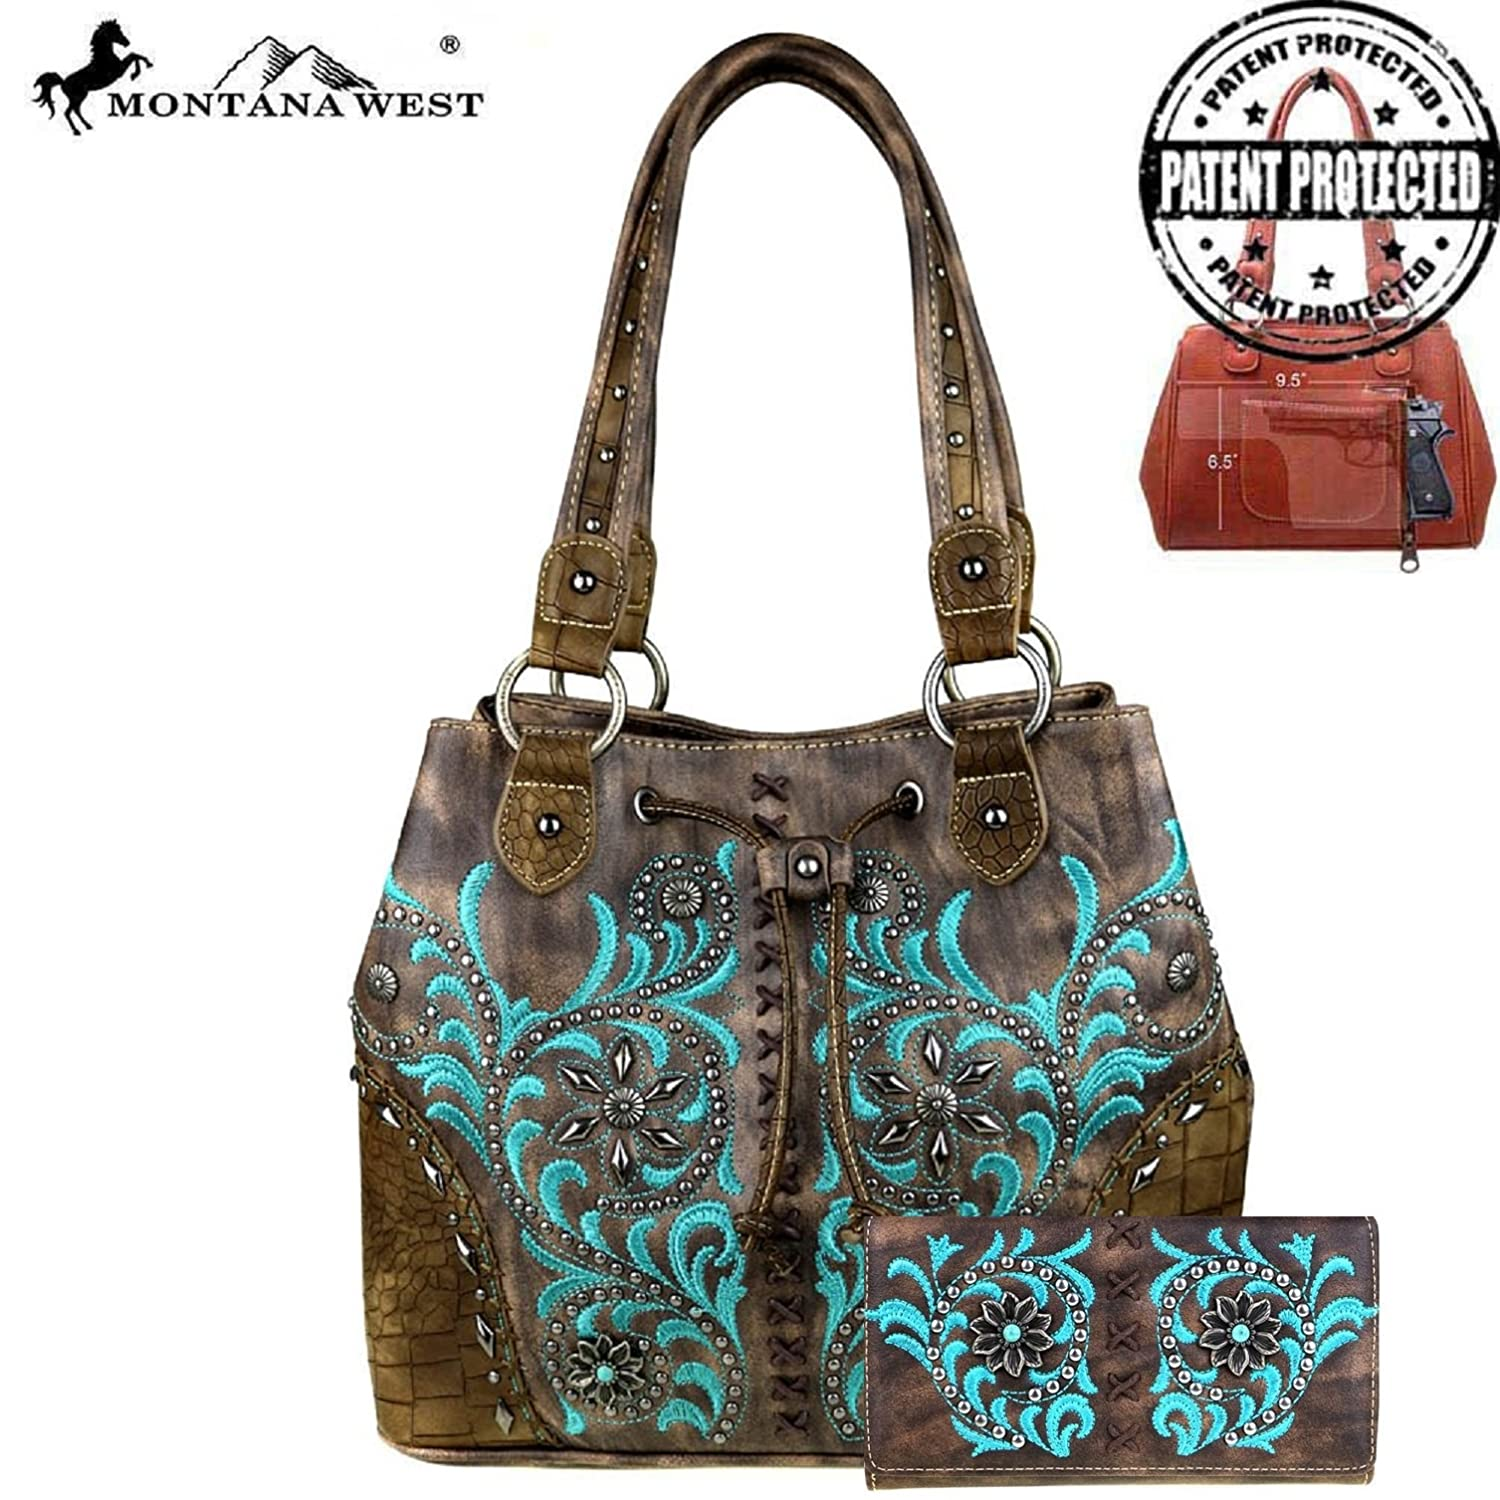 Montana West Leather geometric stitch Concho Collection Gun Conceal Handbag Set